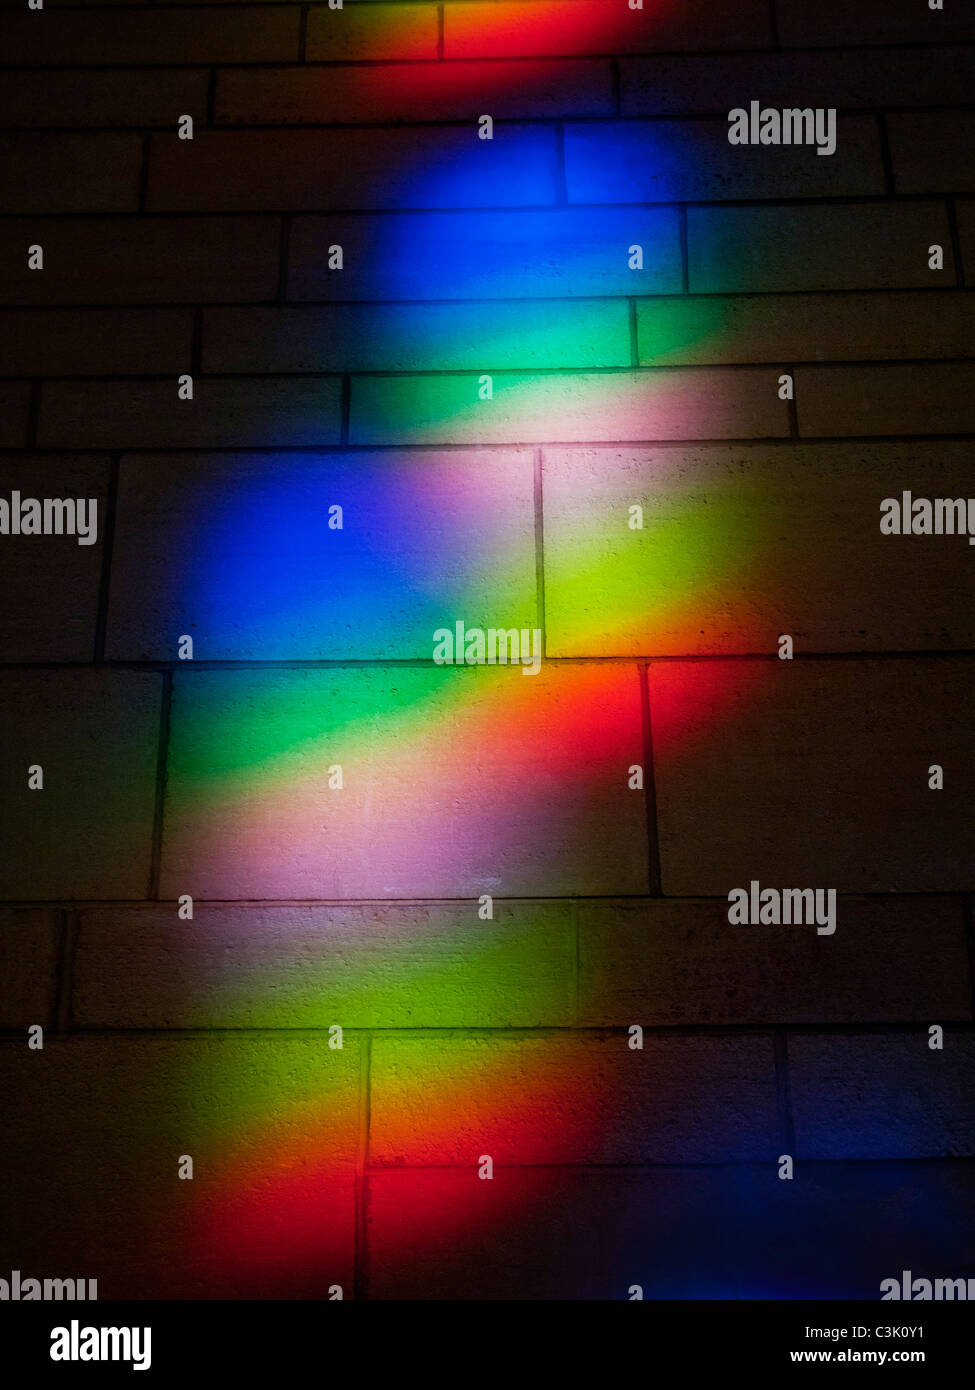 Sunlight refracted through a window forms a spectrum on a wall in Washington, D.C. - Stock Image